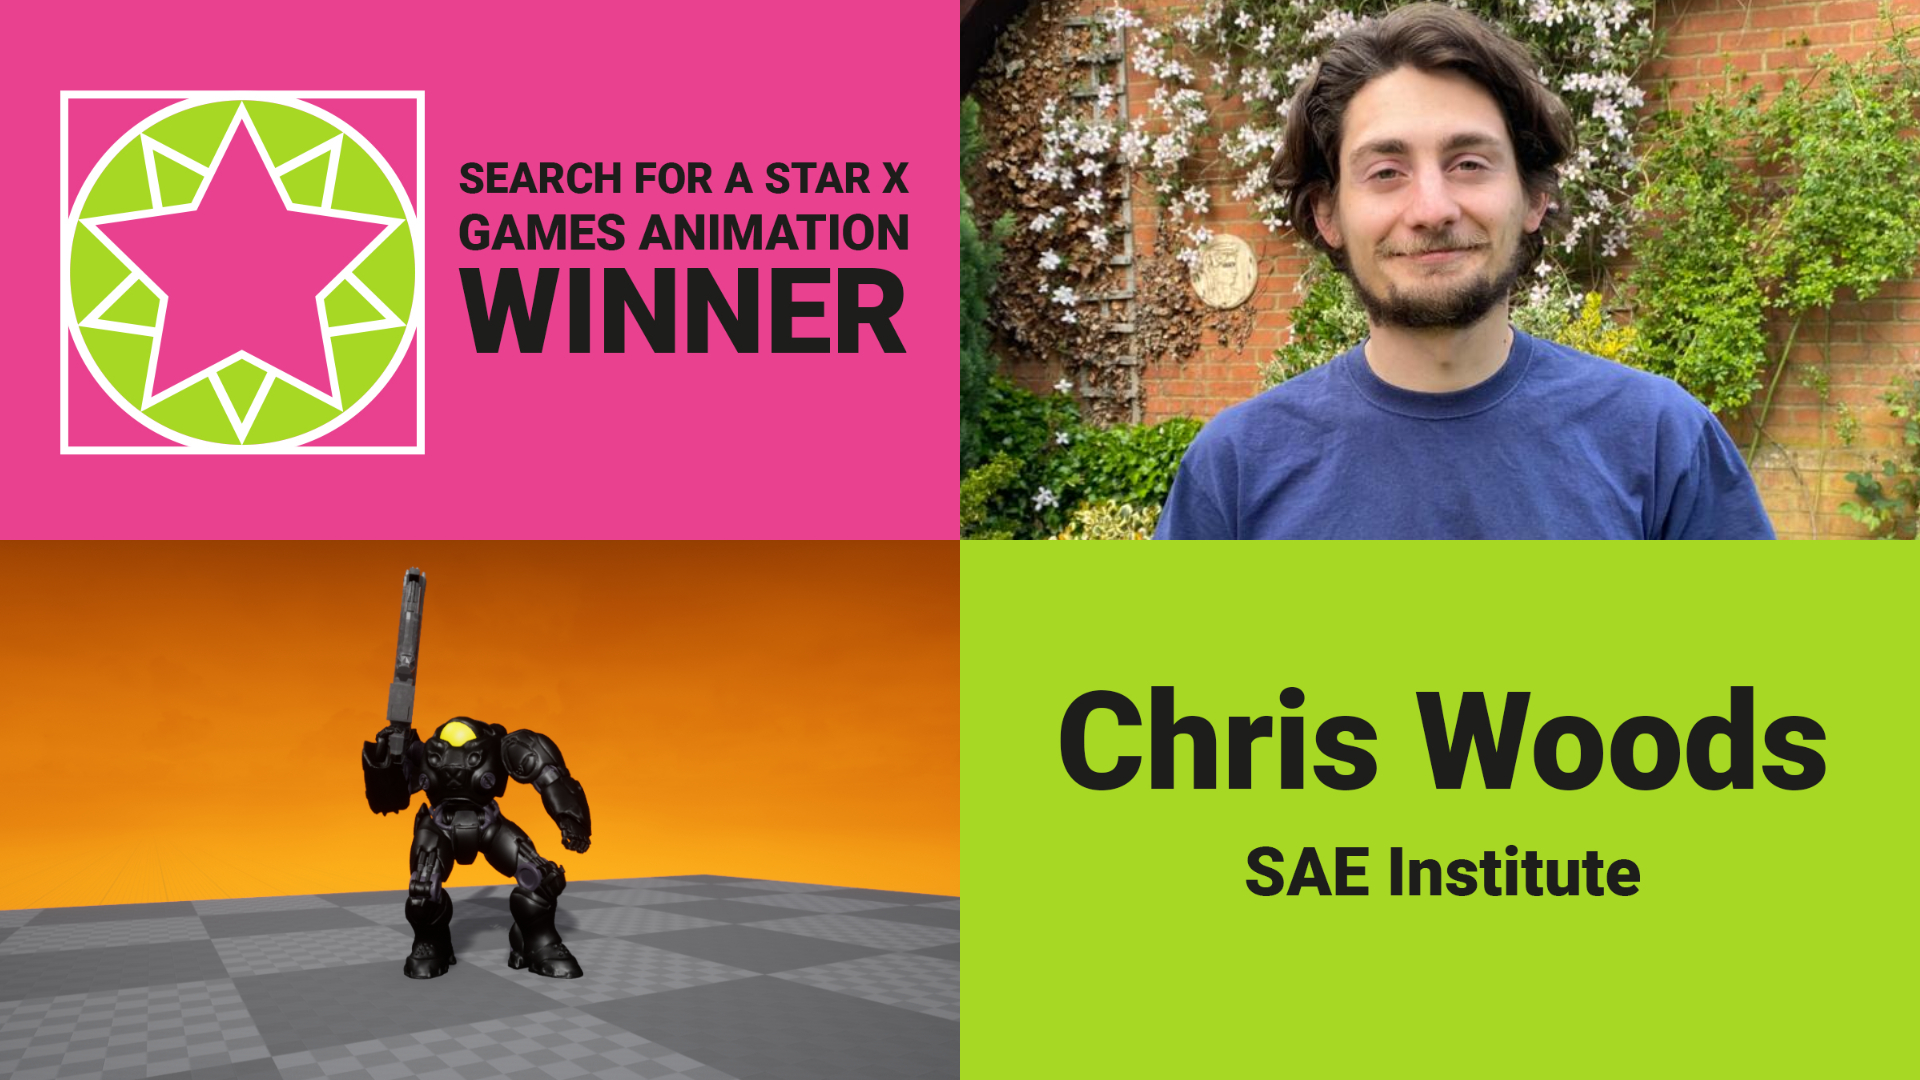 Chris Woods - Search For A Star Winner Games Animation